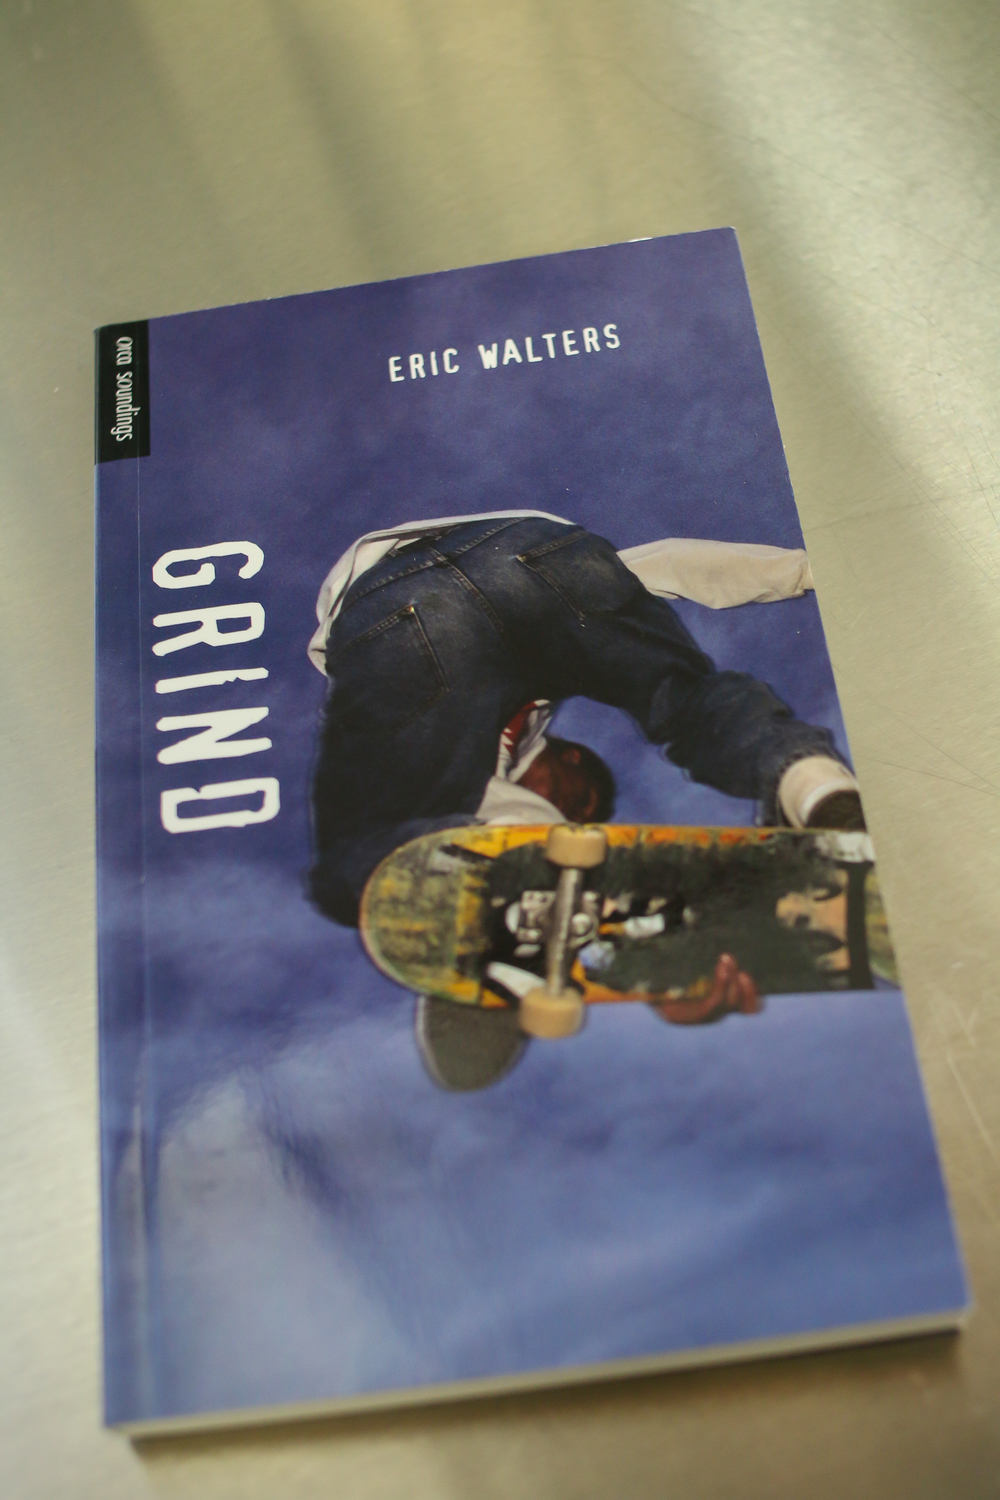 grind walters eric